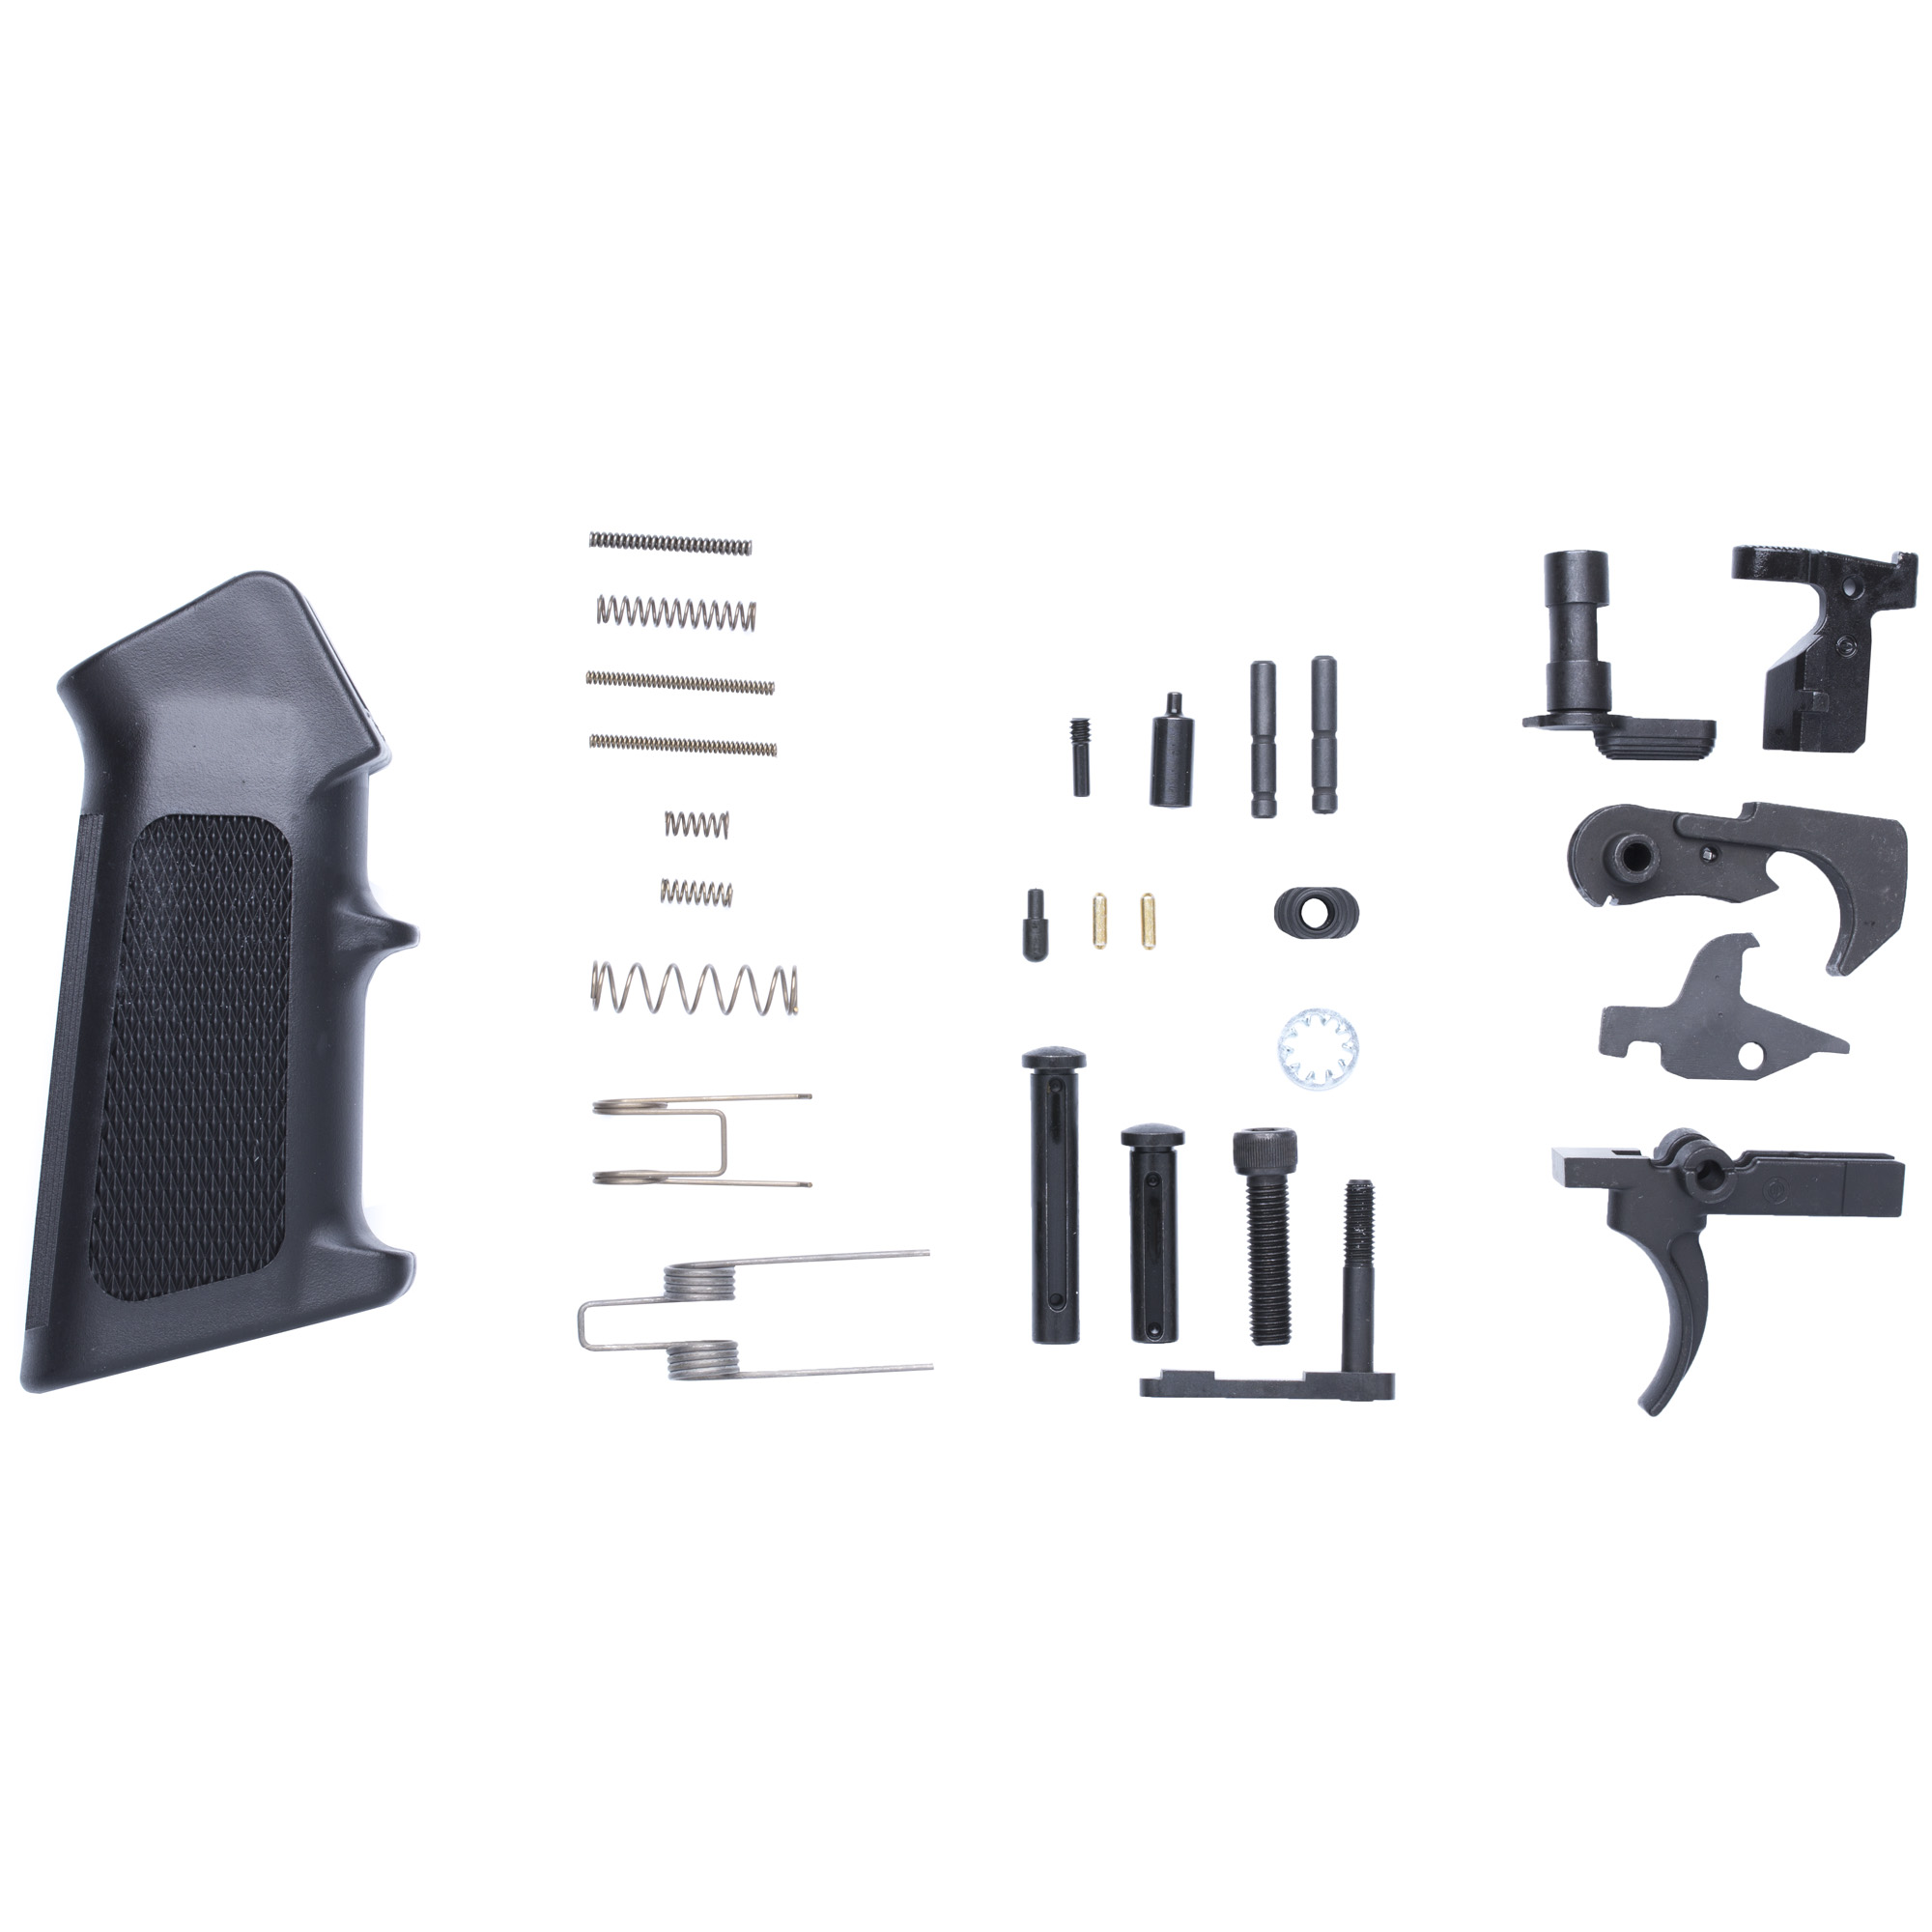 All the parts you need to get started on your next Mk3 build. Combine this kit with a buttstock kit to complete your lower group. Compatible with CMMG Mk3 Lowers and most LR308 type lowers.